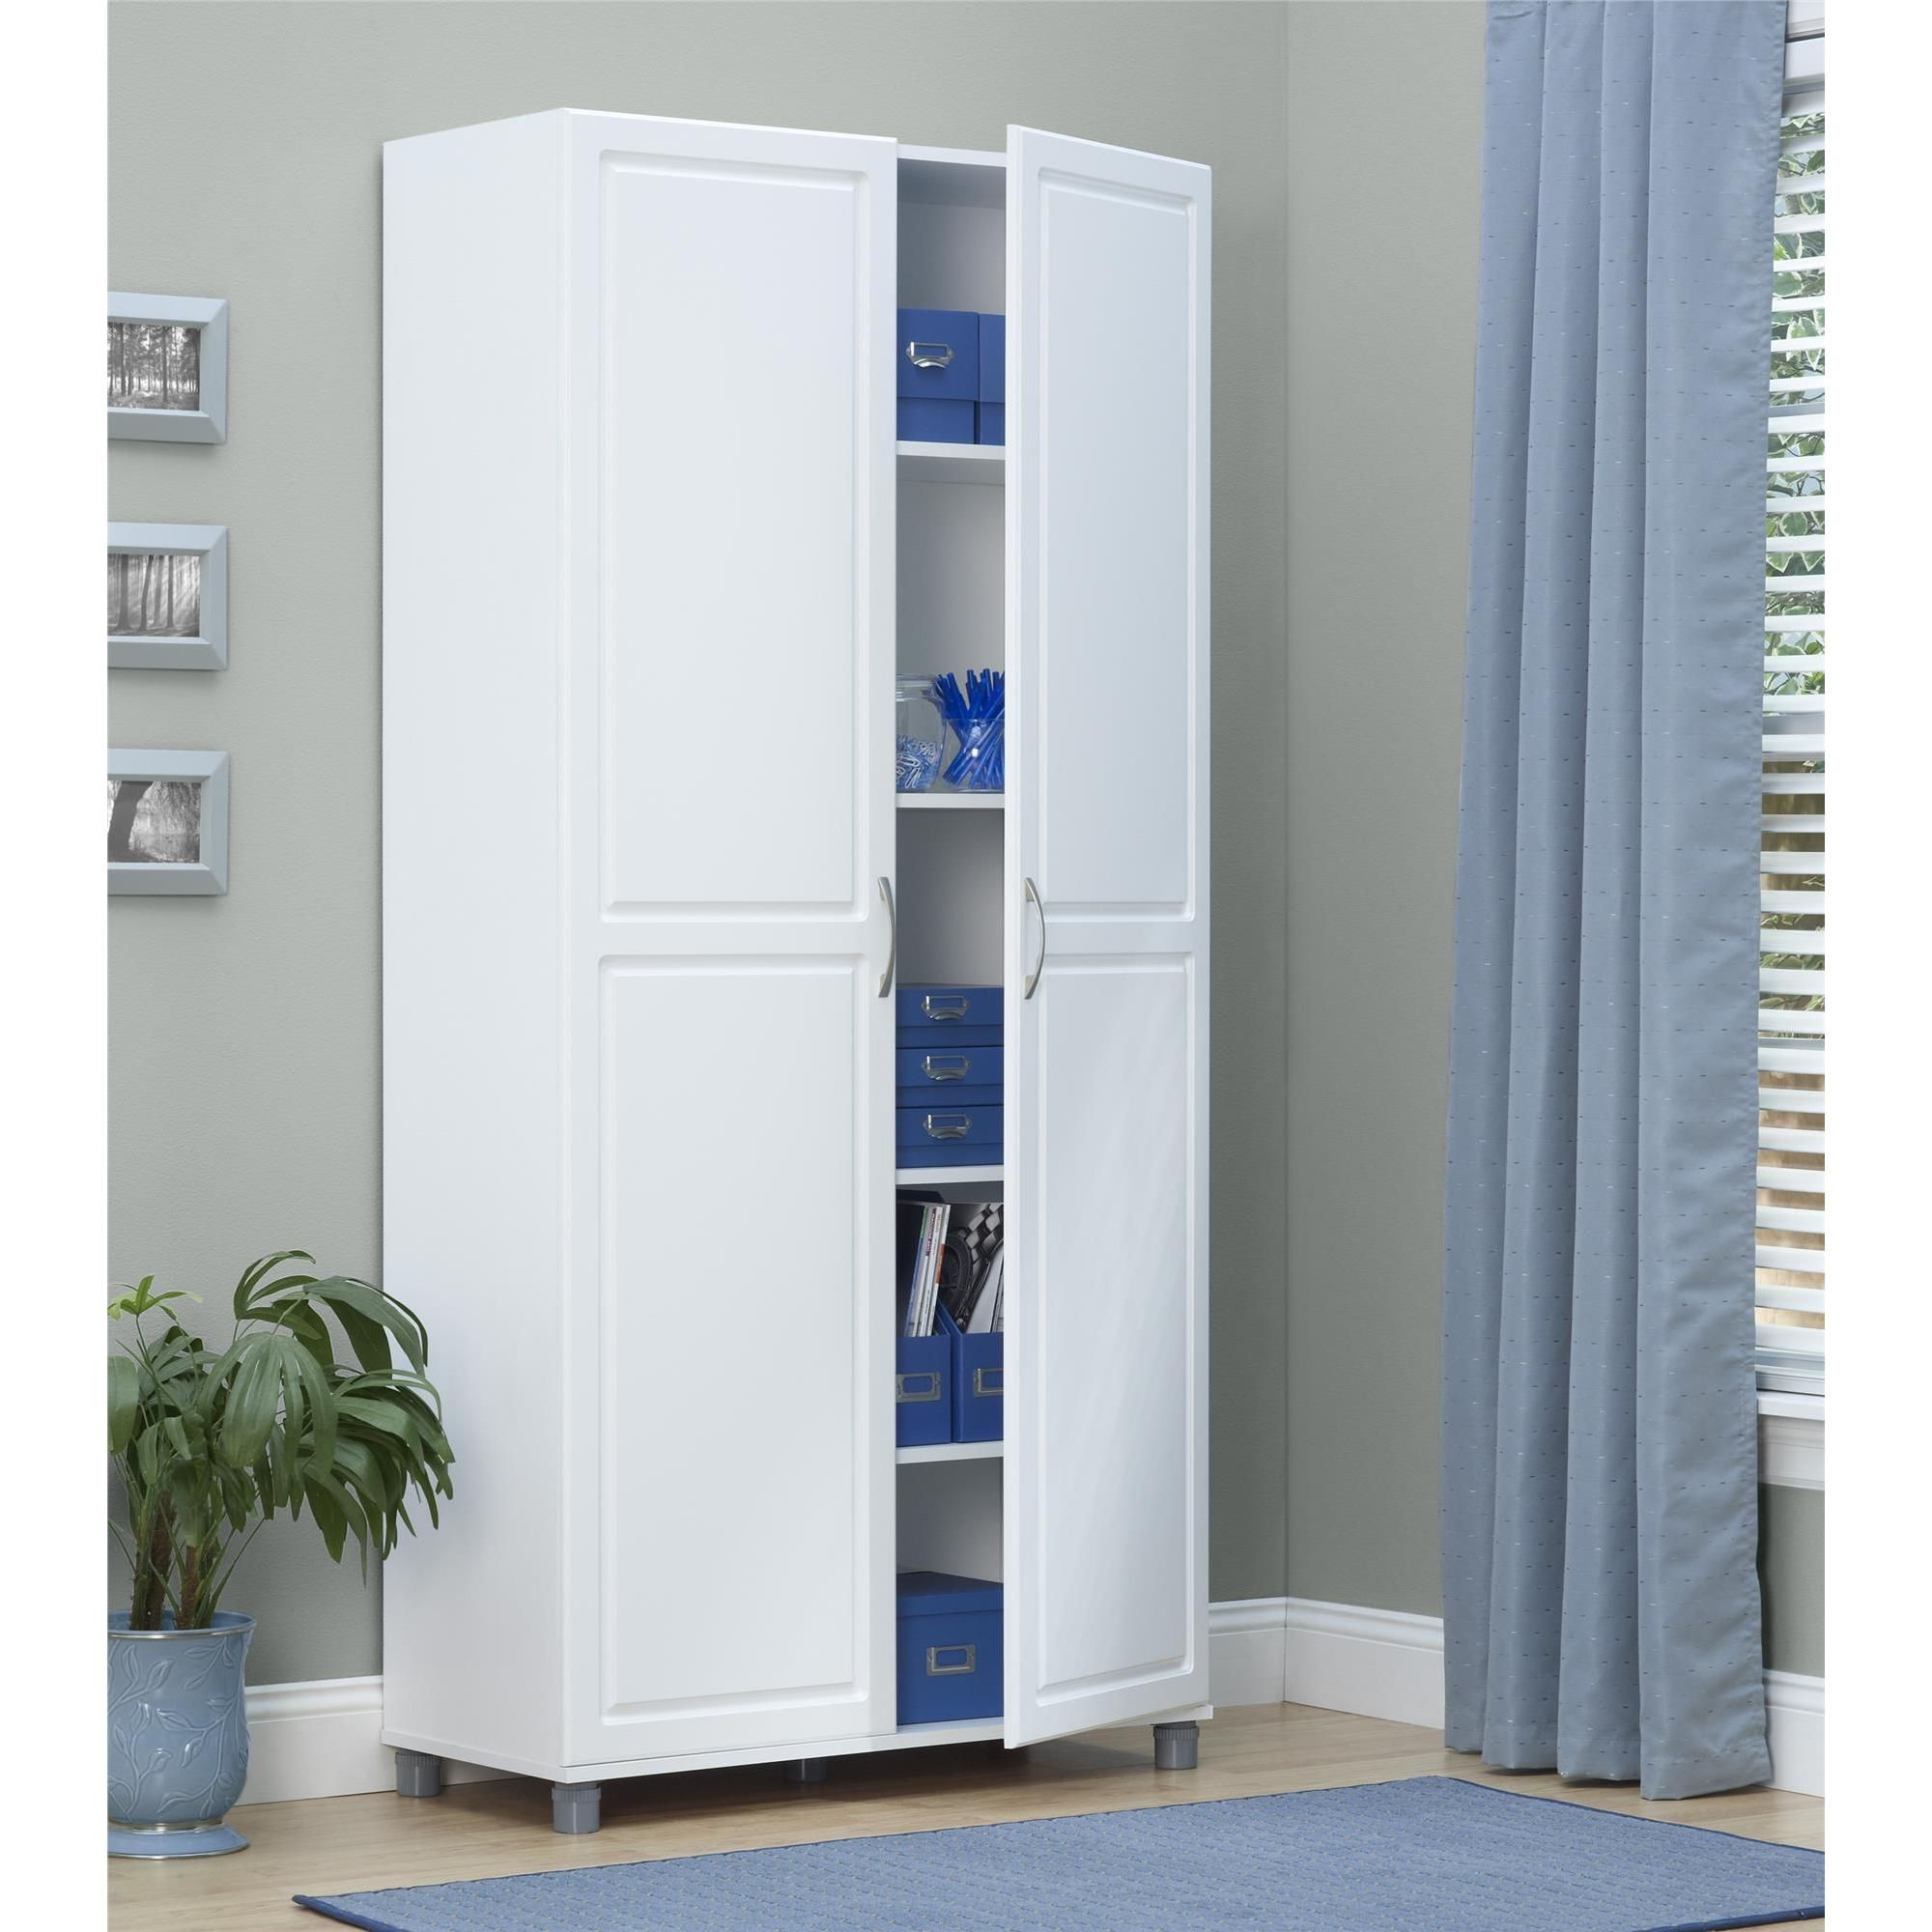 Add extra storage space to any room in your home with the ...